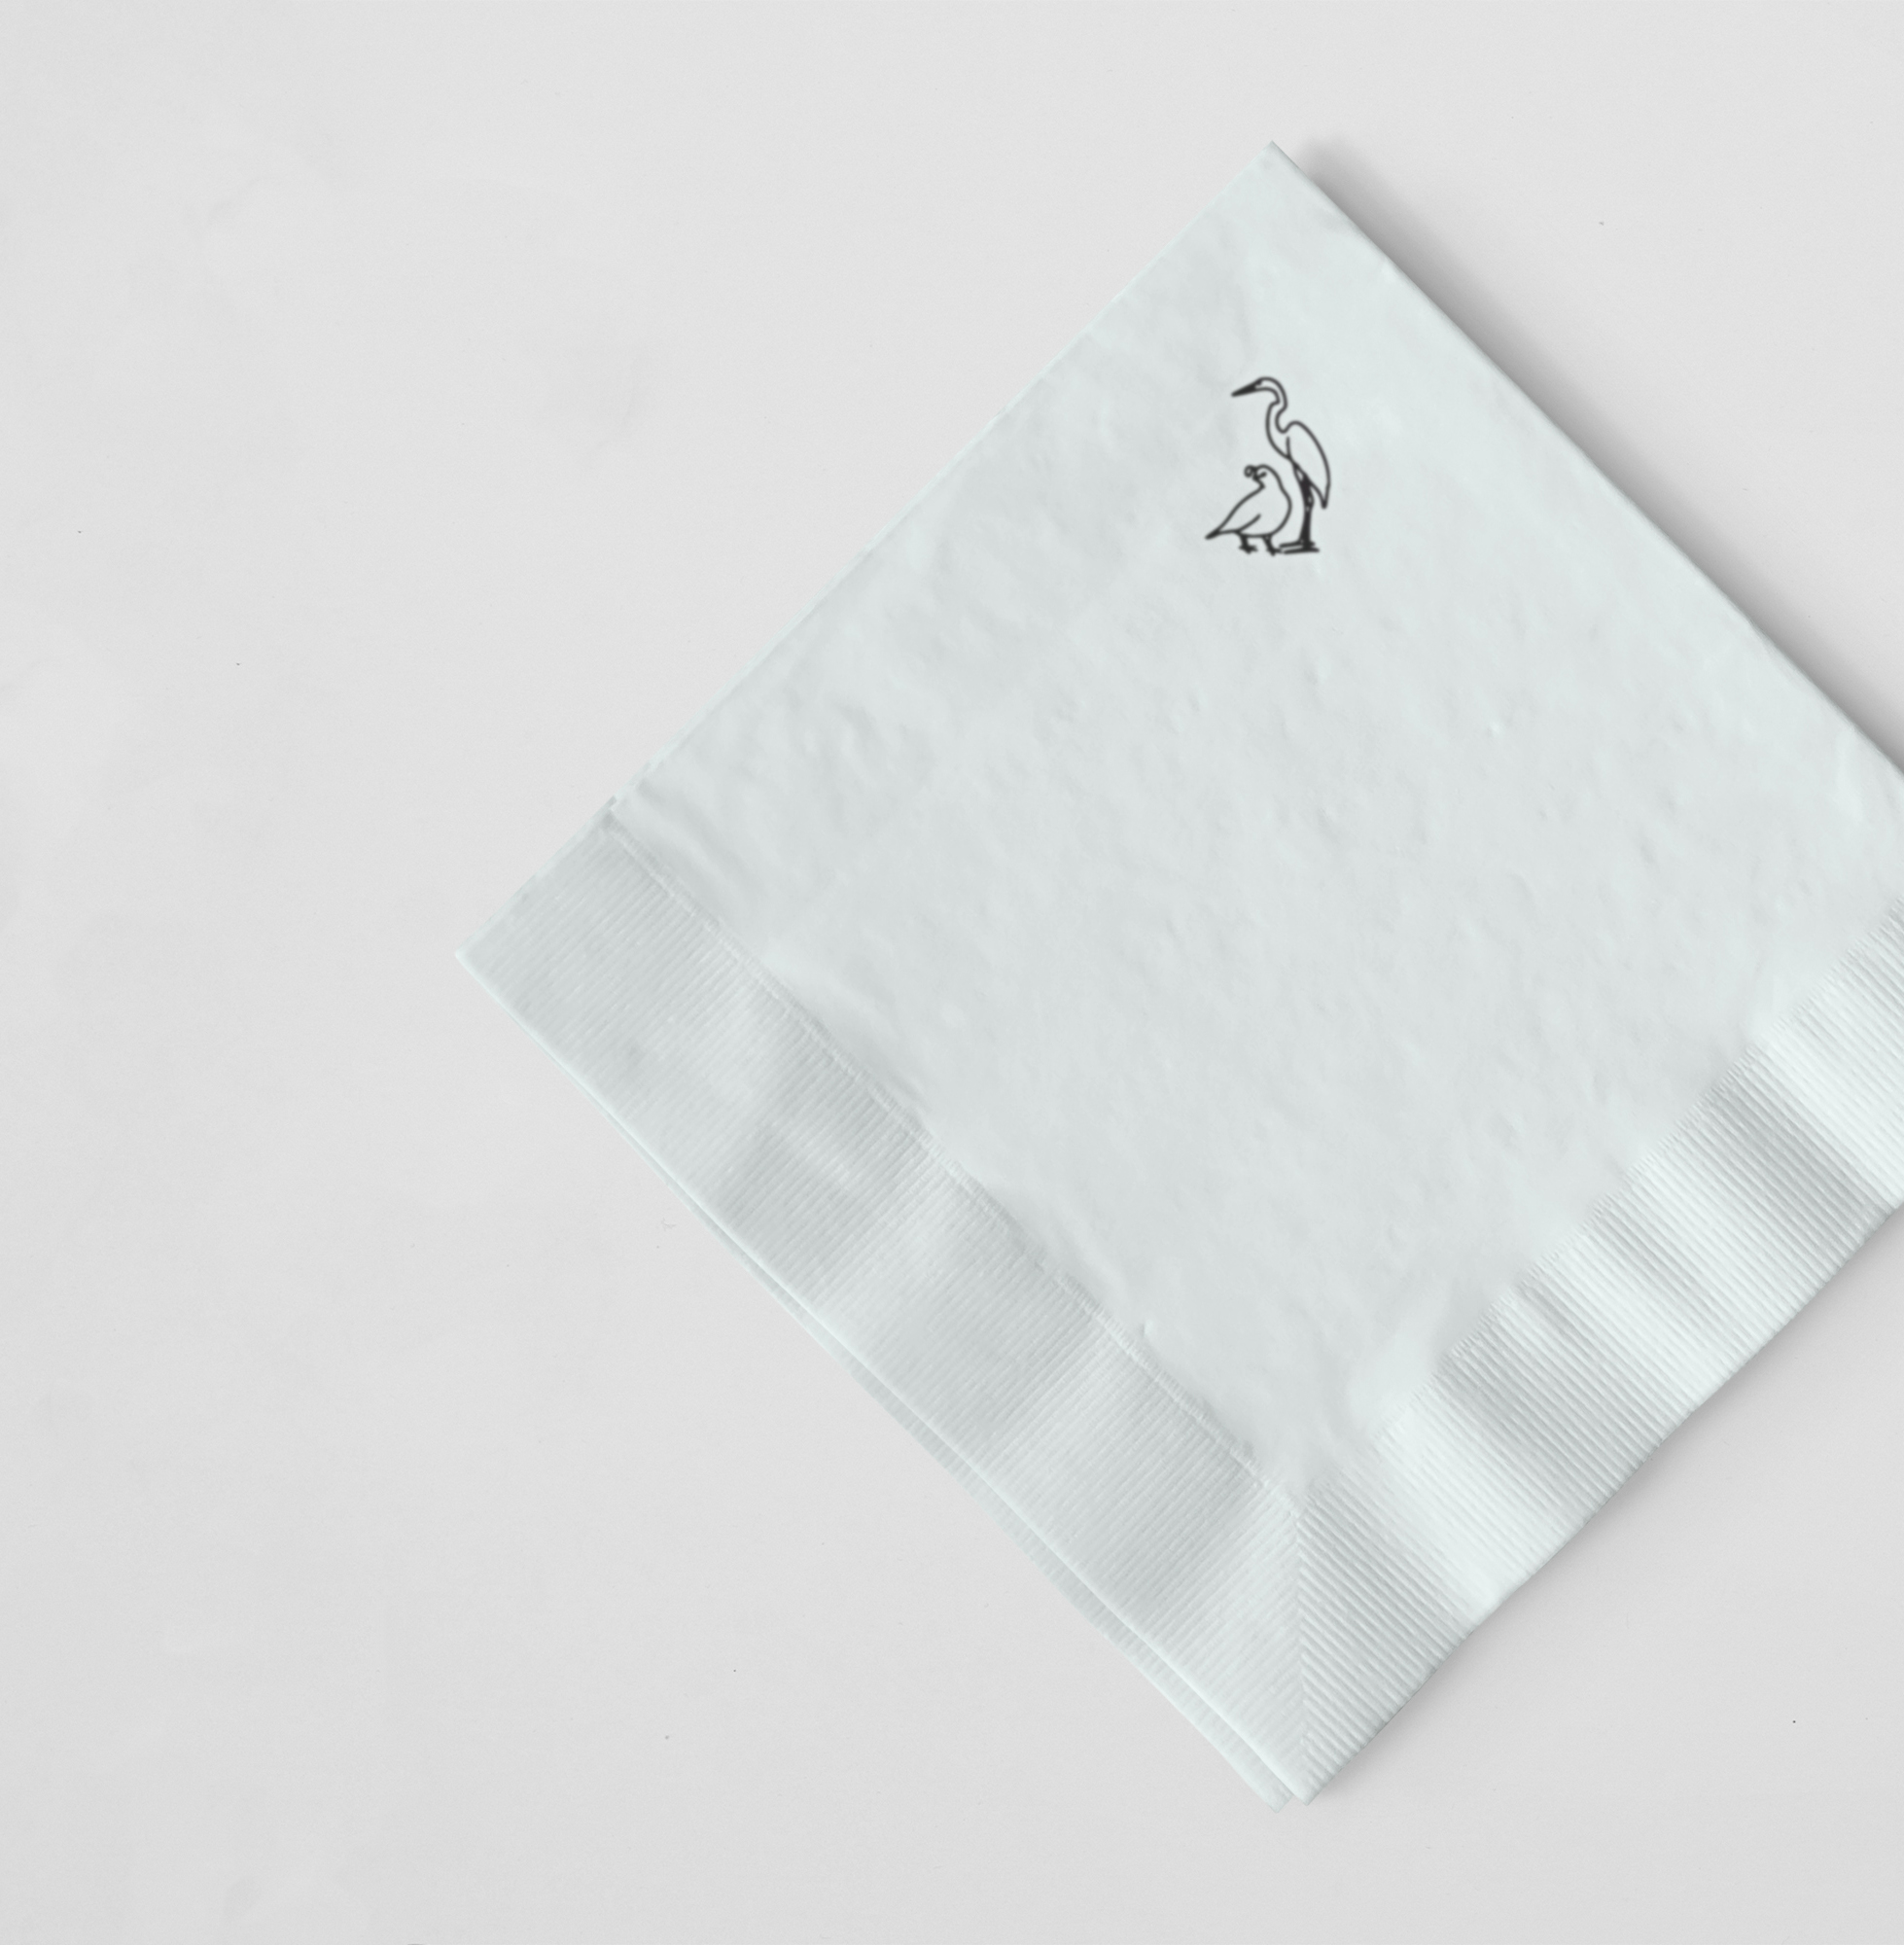 RESIZED_Napkin Mock